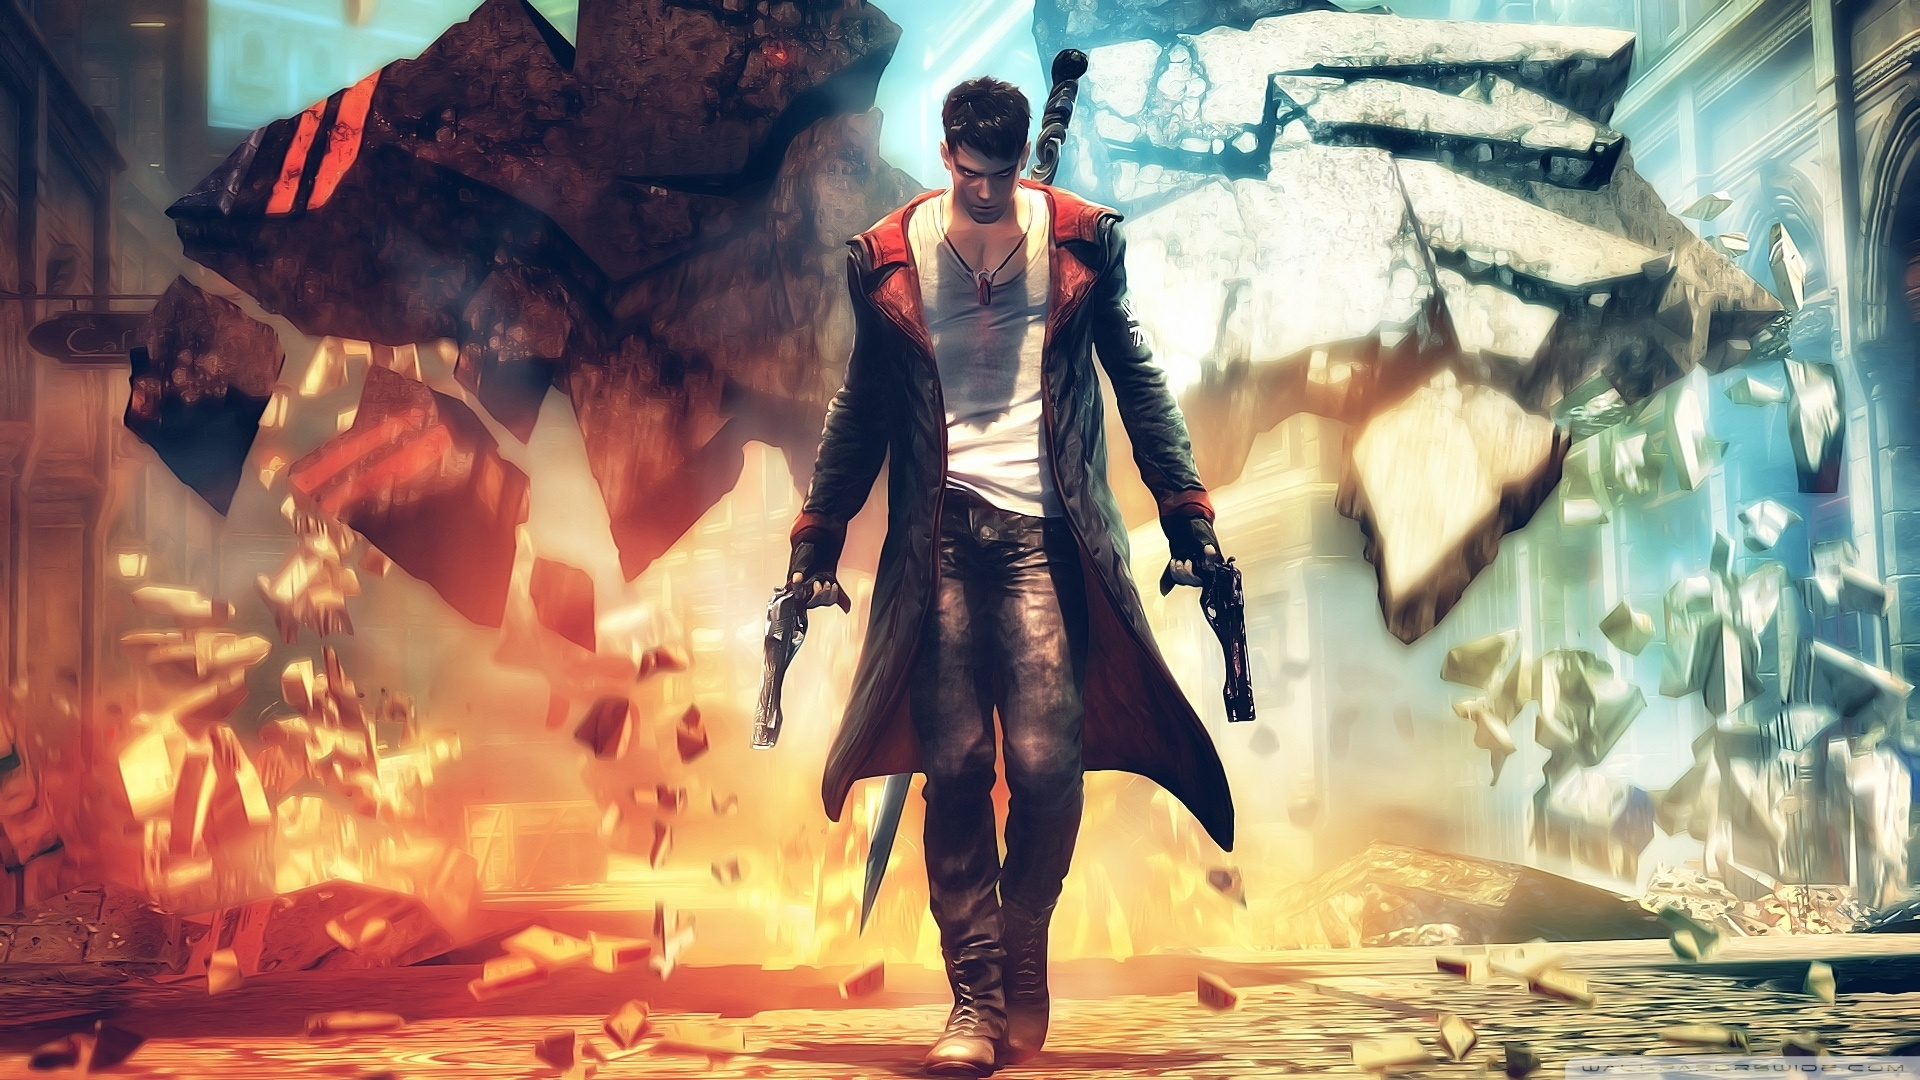 10 Best Devil May Cry Wallpaper 1920X1080 FULL HD 1920×1080 For PC Background